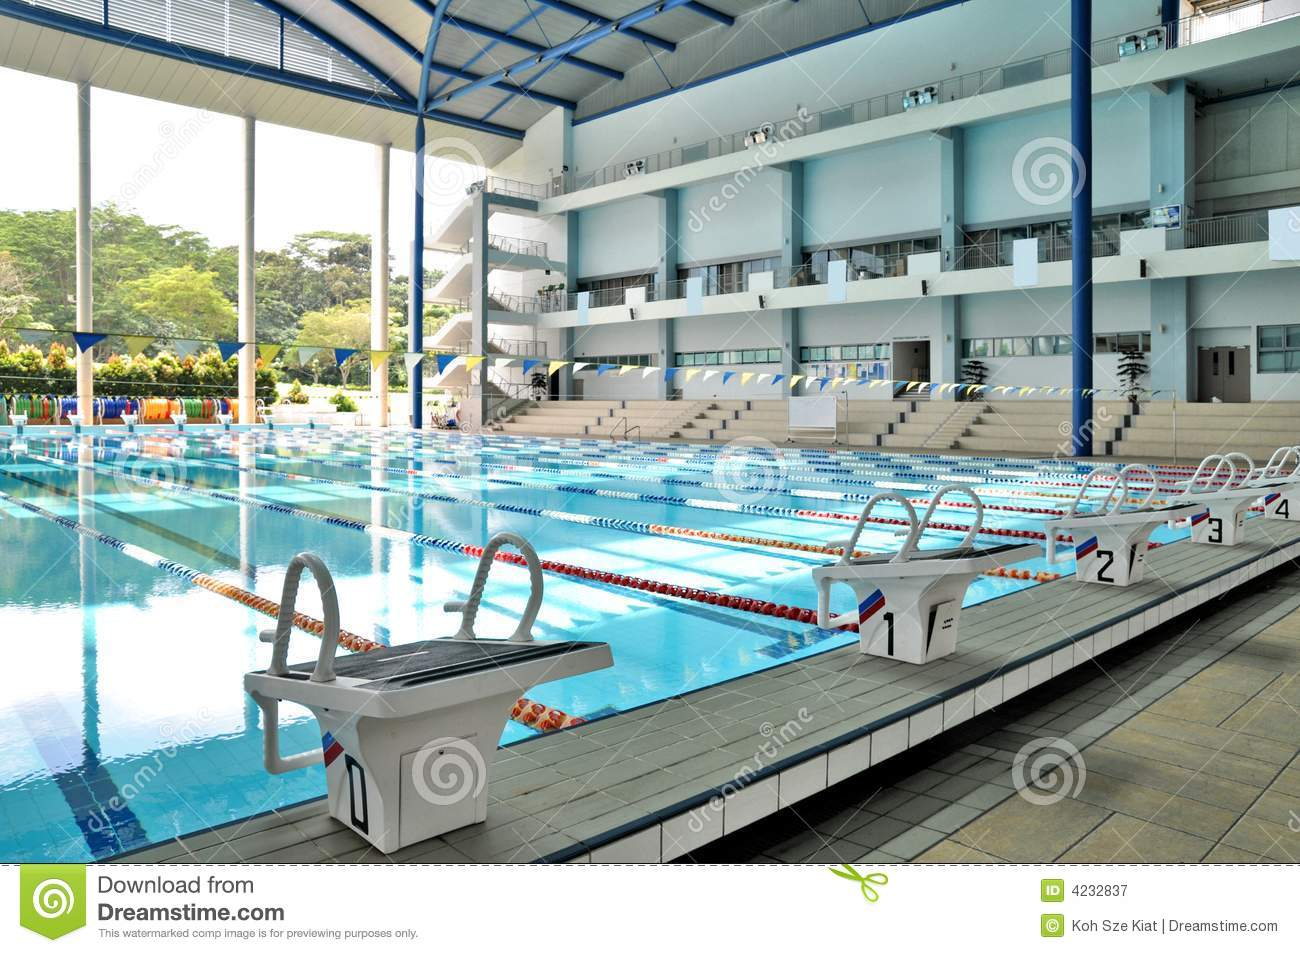 Piscine D Interieur Of Piscine Olympique D 39 Int Rieur De Taille Photographie Stock Libre De Droits Image 4232837